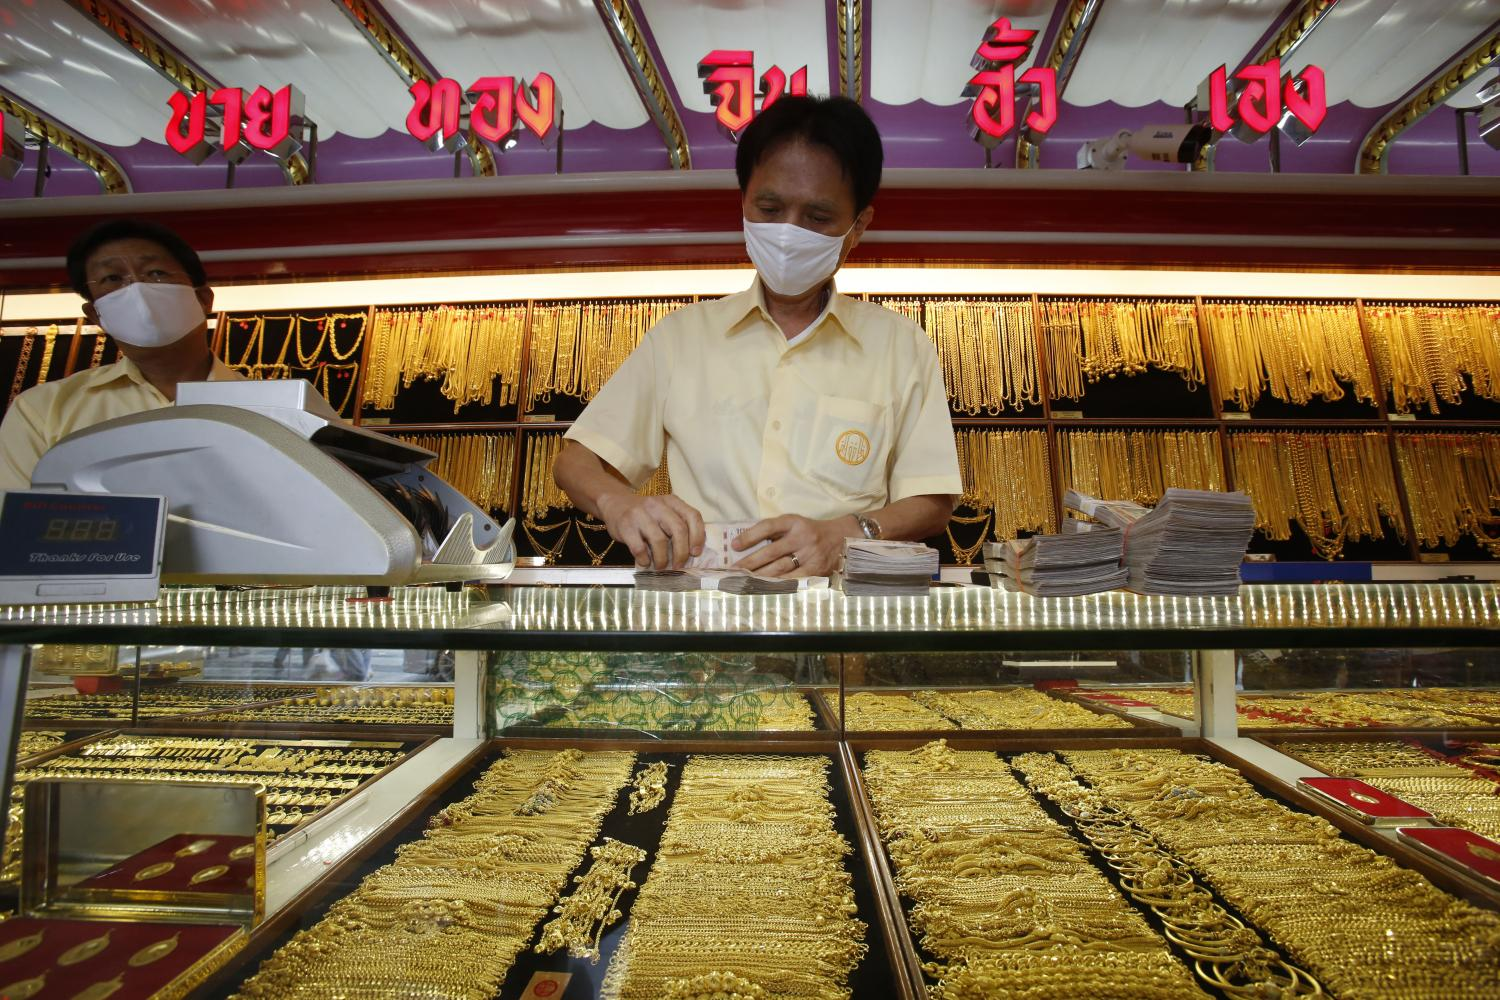 Gold for sale at a shop on Yaowarat Road. Gold prices continue to set records as investors seek safe havens. (Photo by Pornprom Satrabhaya)